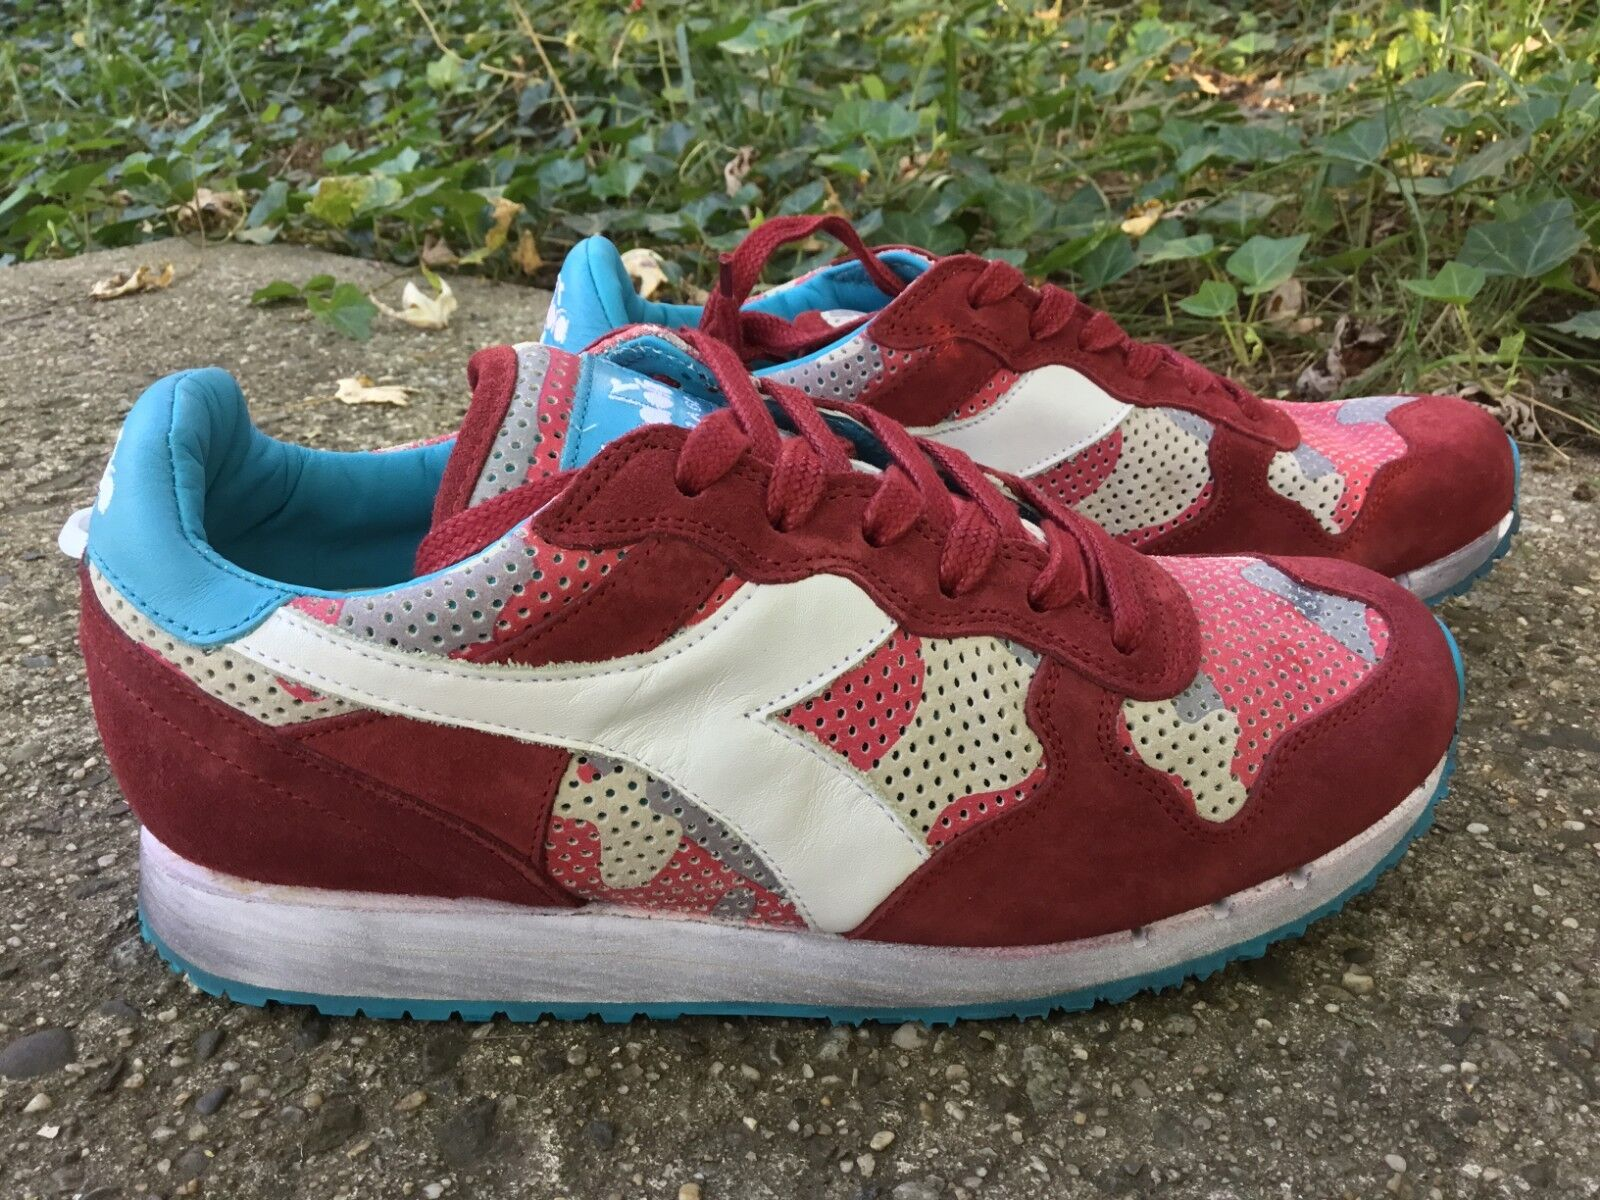 Diadora Heritage Trident Trident Trident Camo Red White C5812 men's shoes sneakers size 12 ac698d